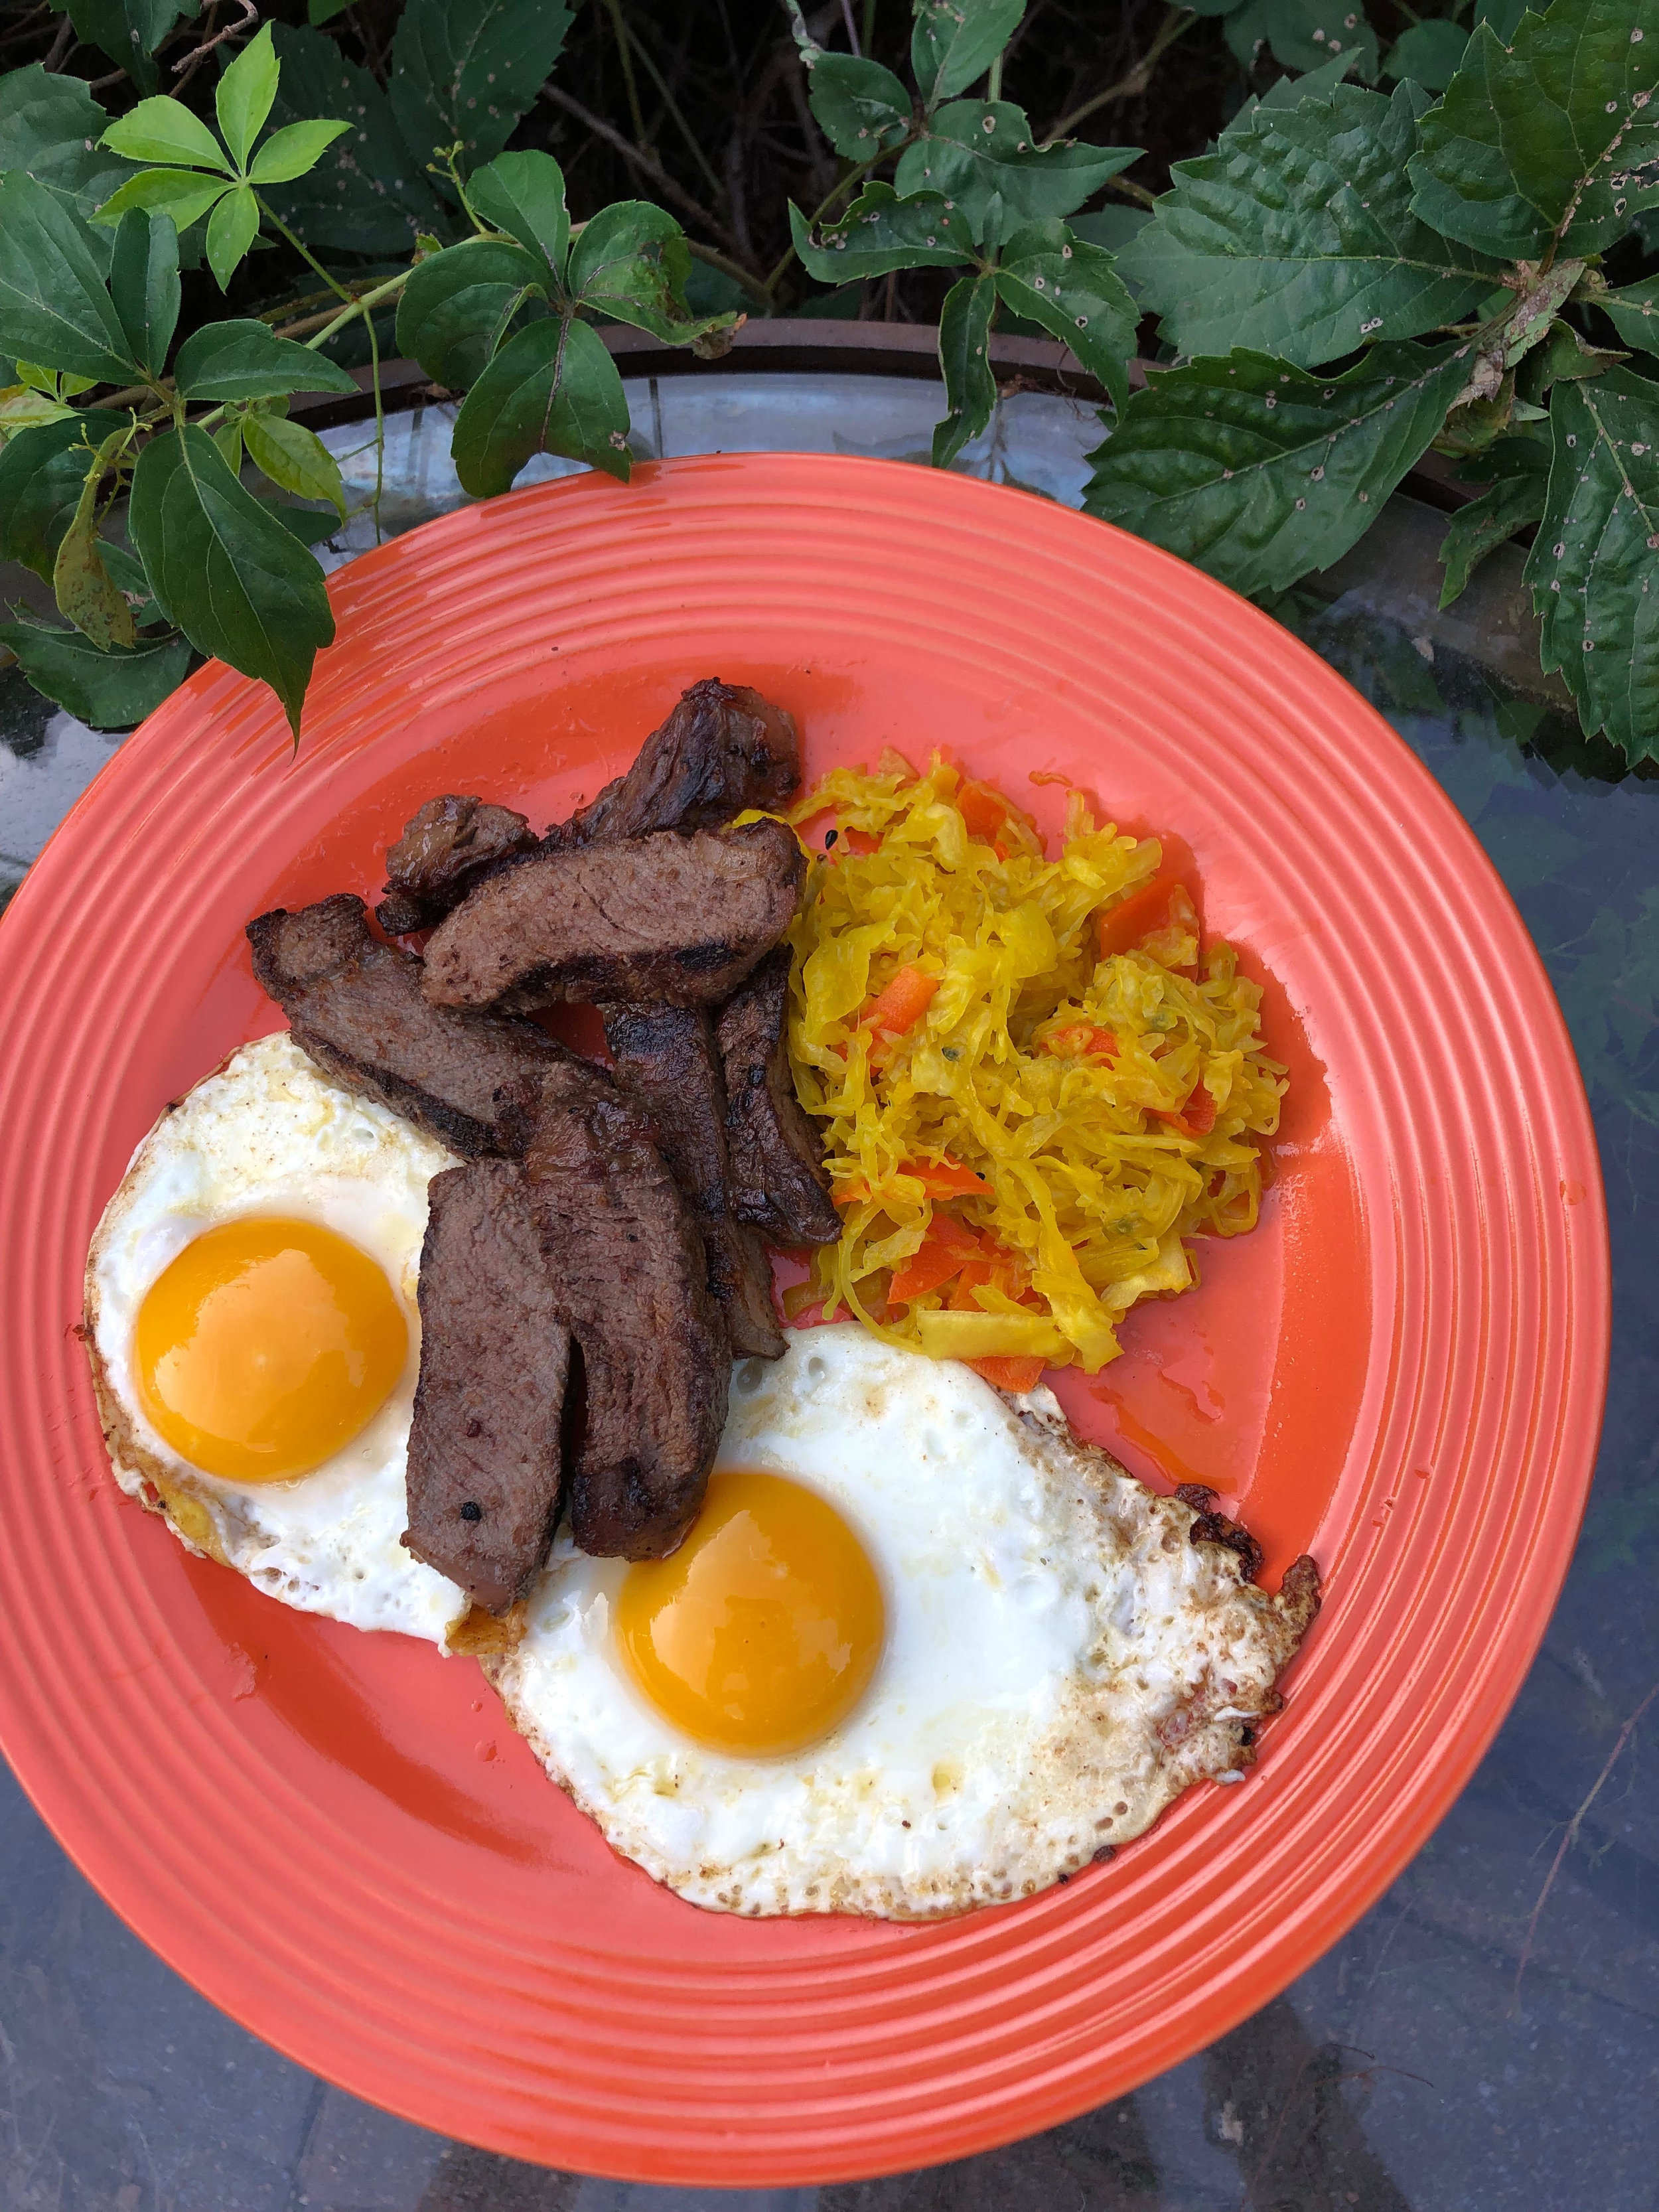 Simple and nourishing: here's a breakfast of steak, eggs, and ginger sauerkraut. Beats cereal any day, wouldn't you say?!